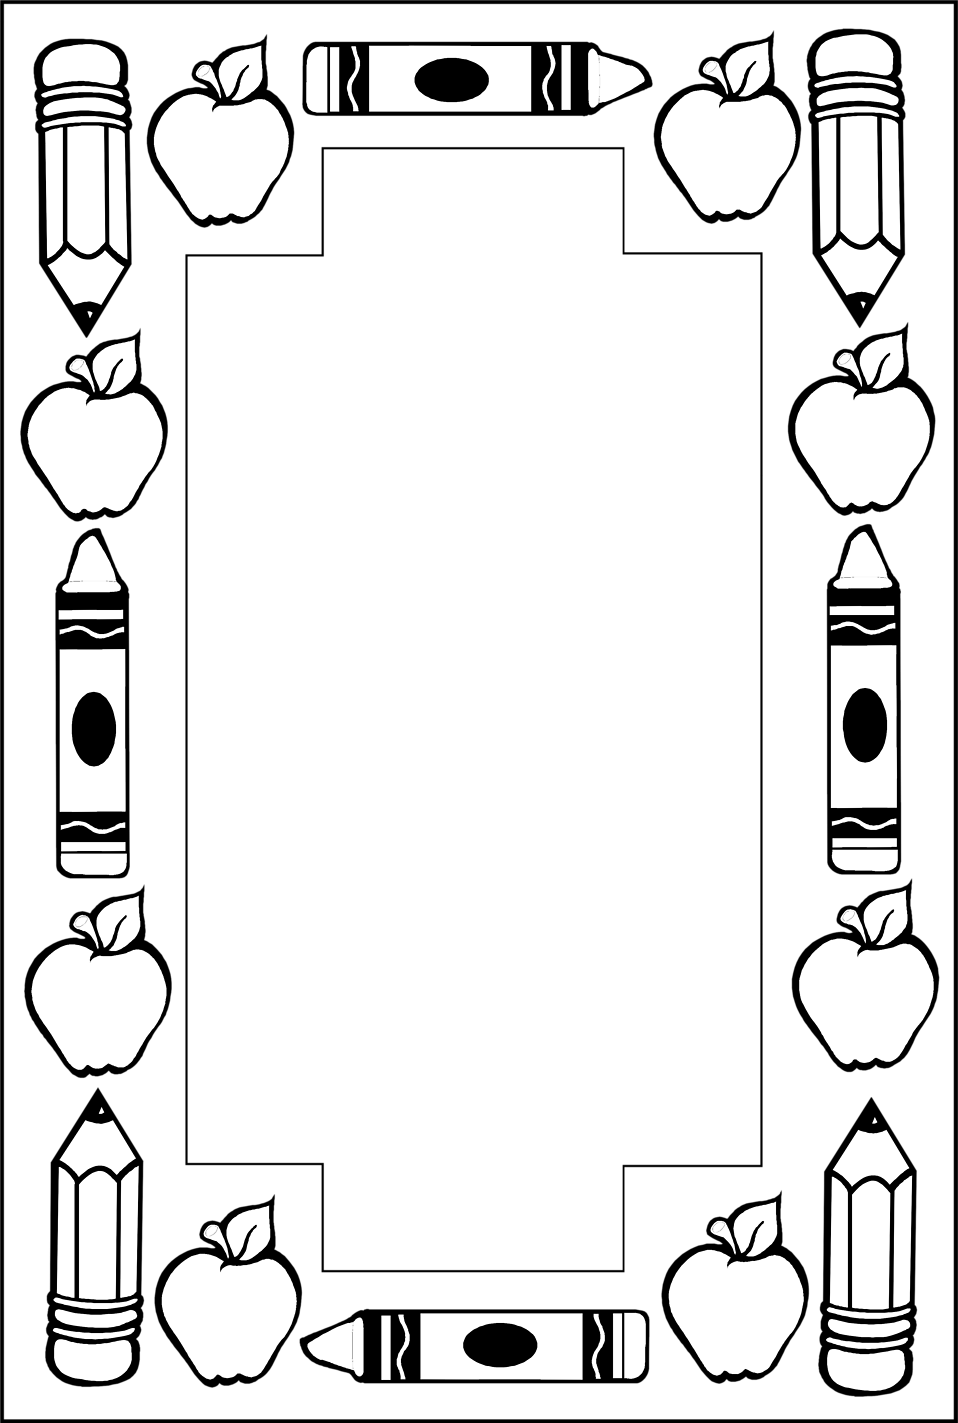 School Supplies Clipart Black And White Borders.